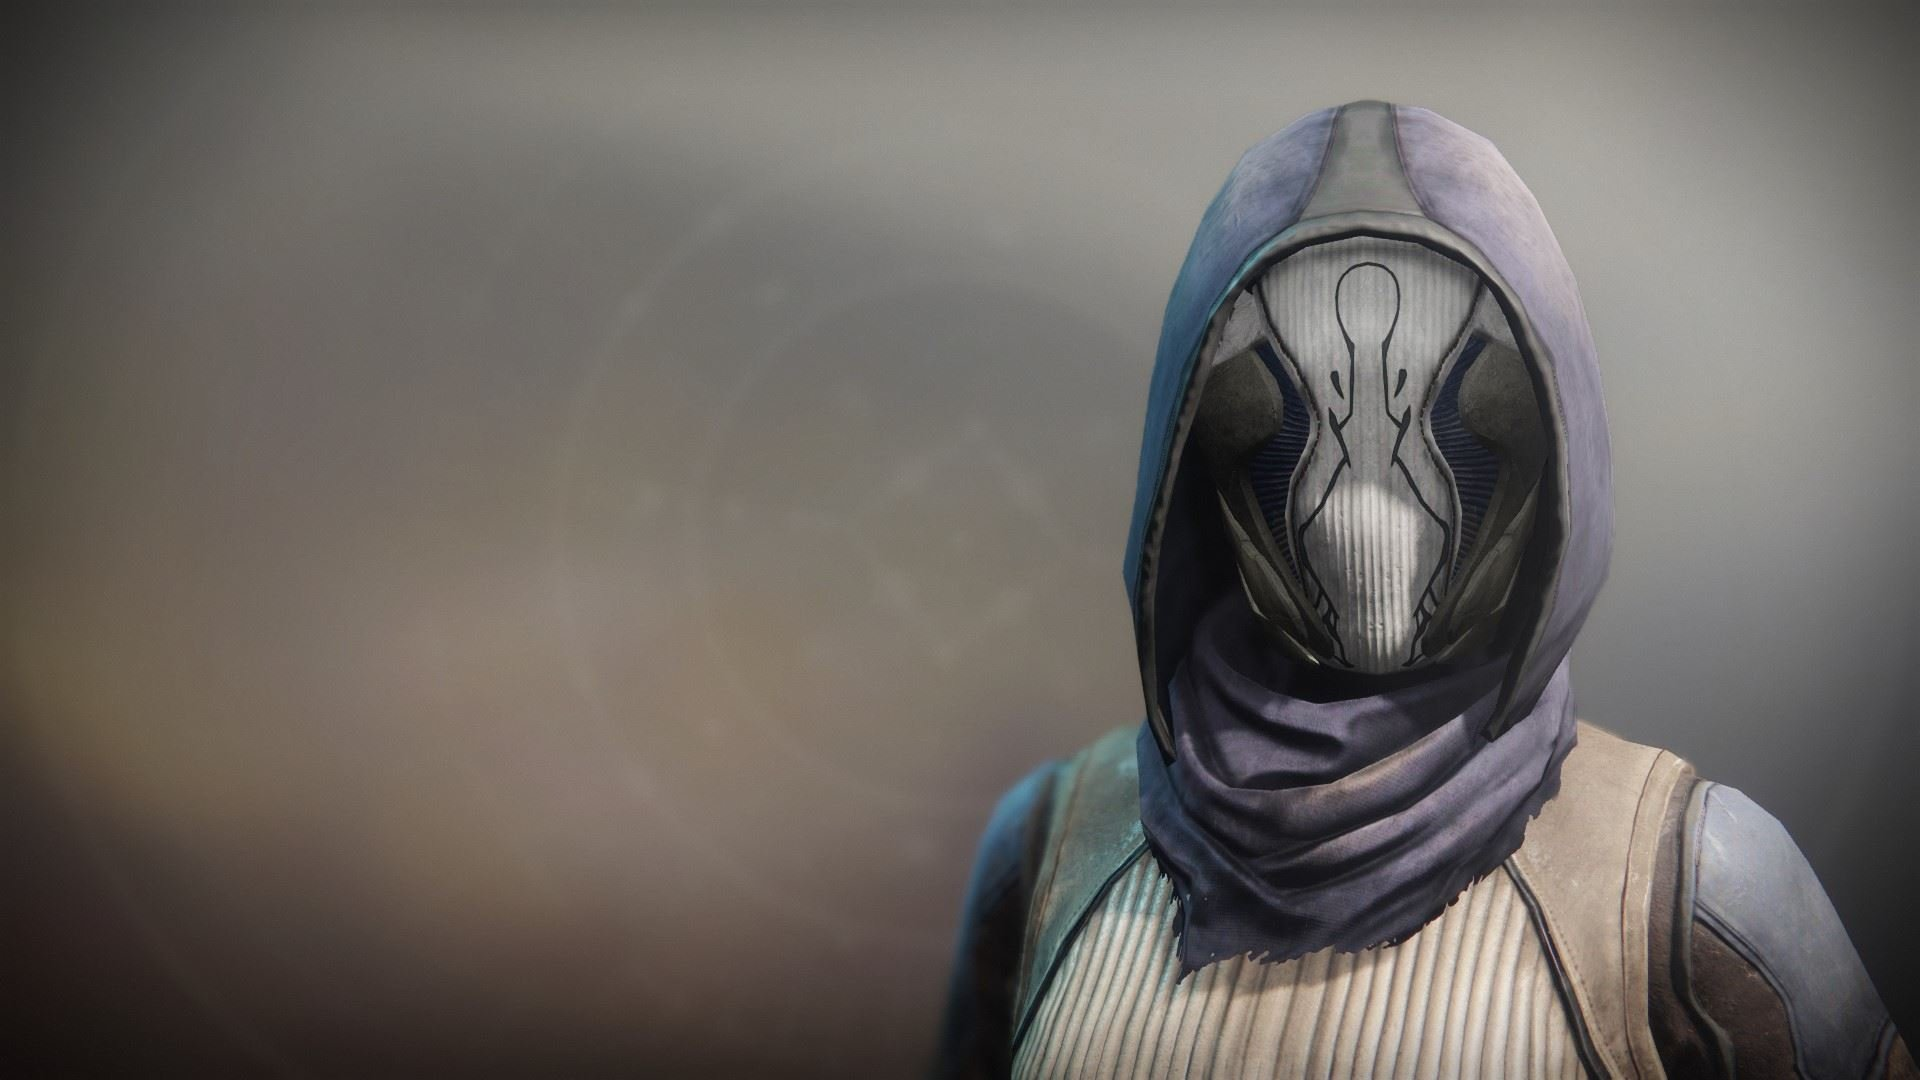 An in-game render of the Dragonfly Regalia Mask.